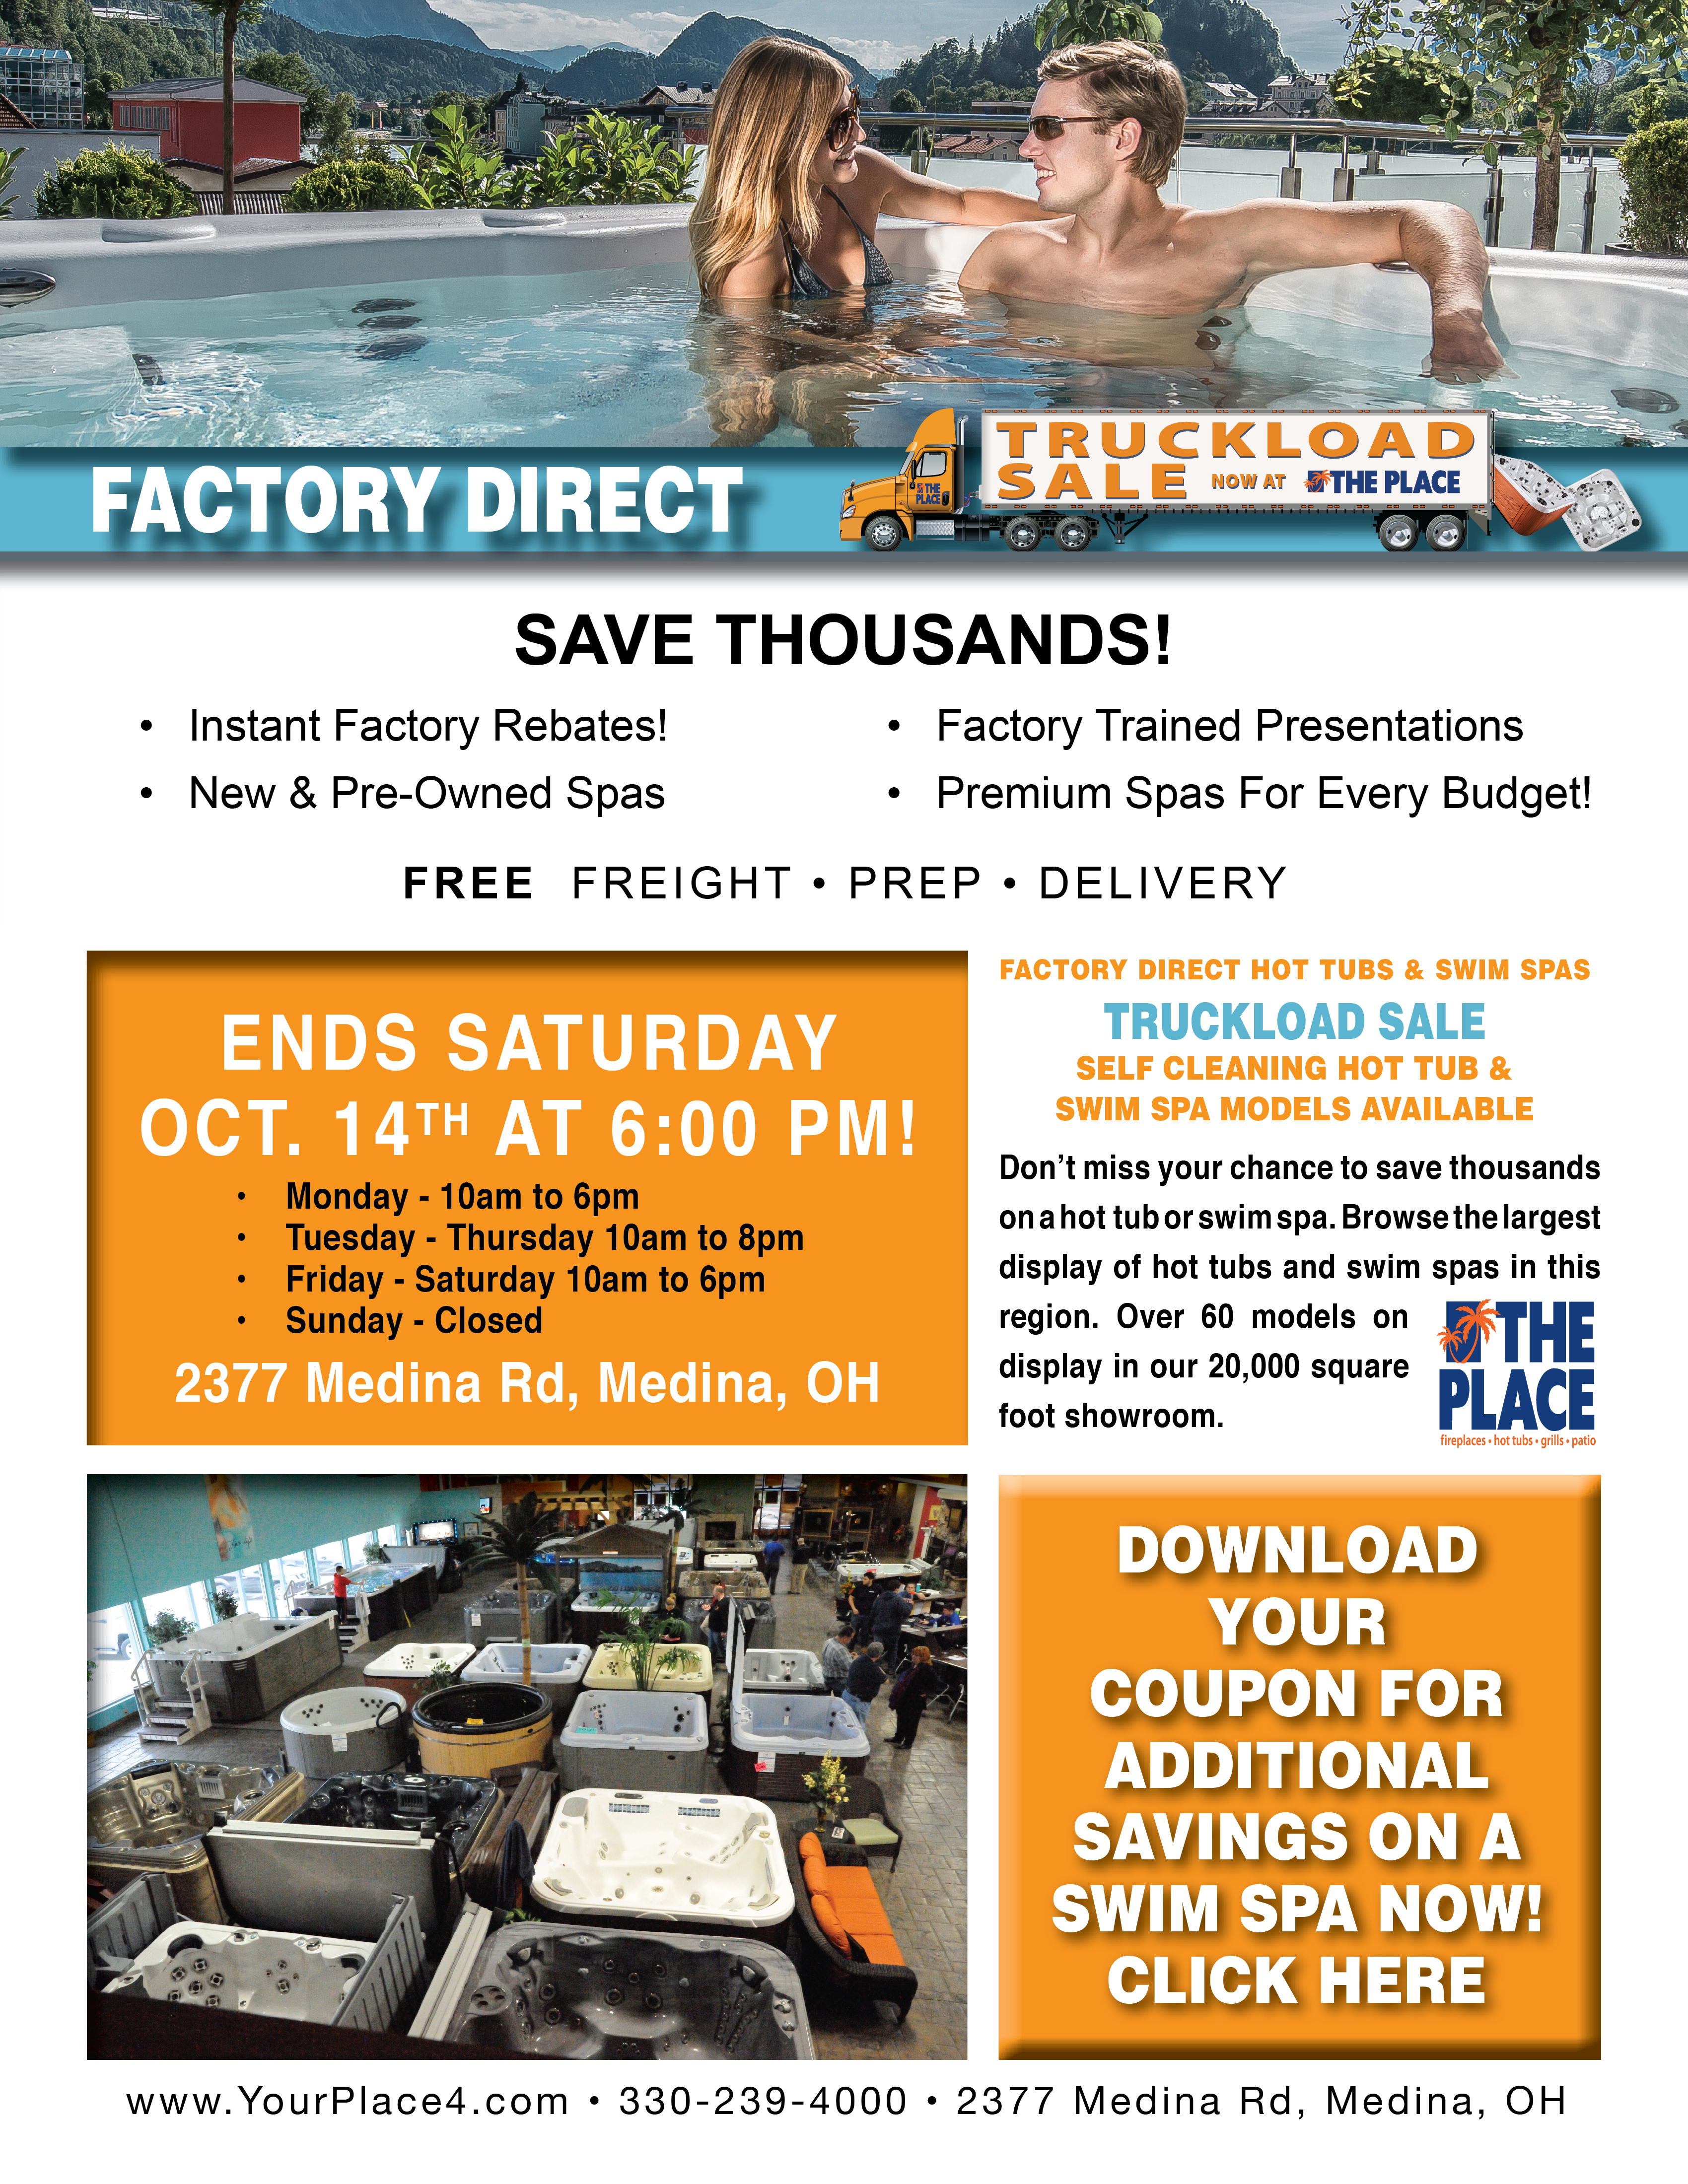 Truckload Sale! Hot Tubs & Swim Spas - The Place